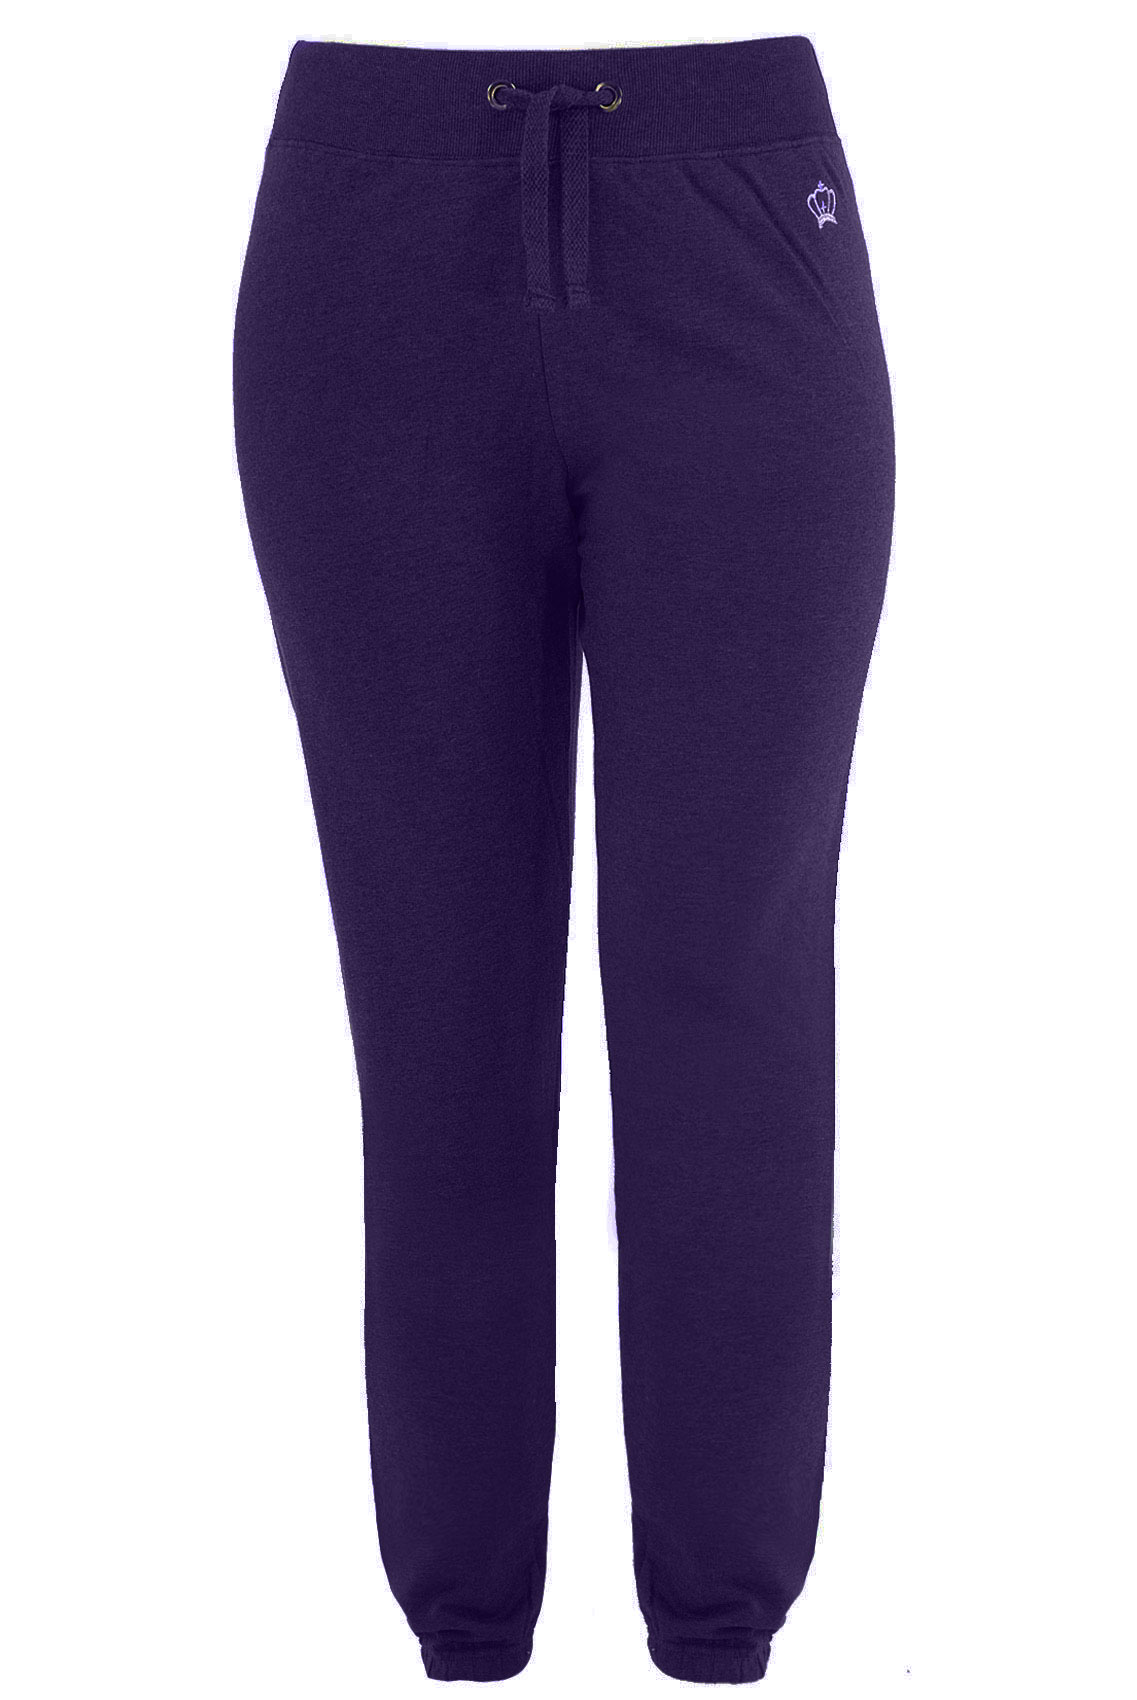 Find great deals on eBay for purple joggers. Shop with confidence.